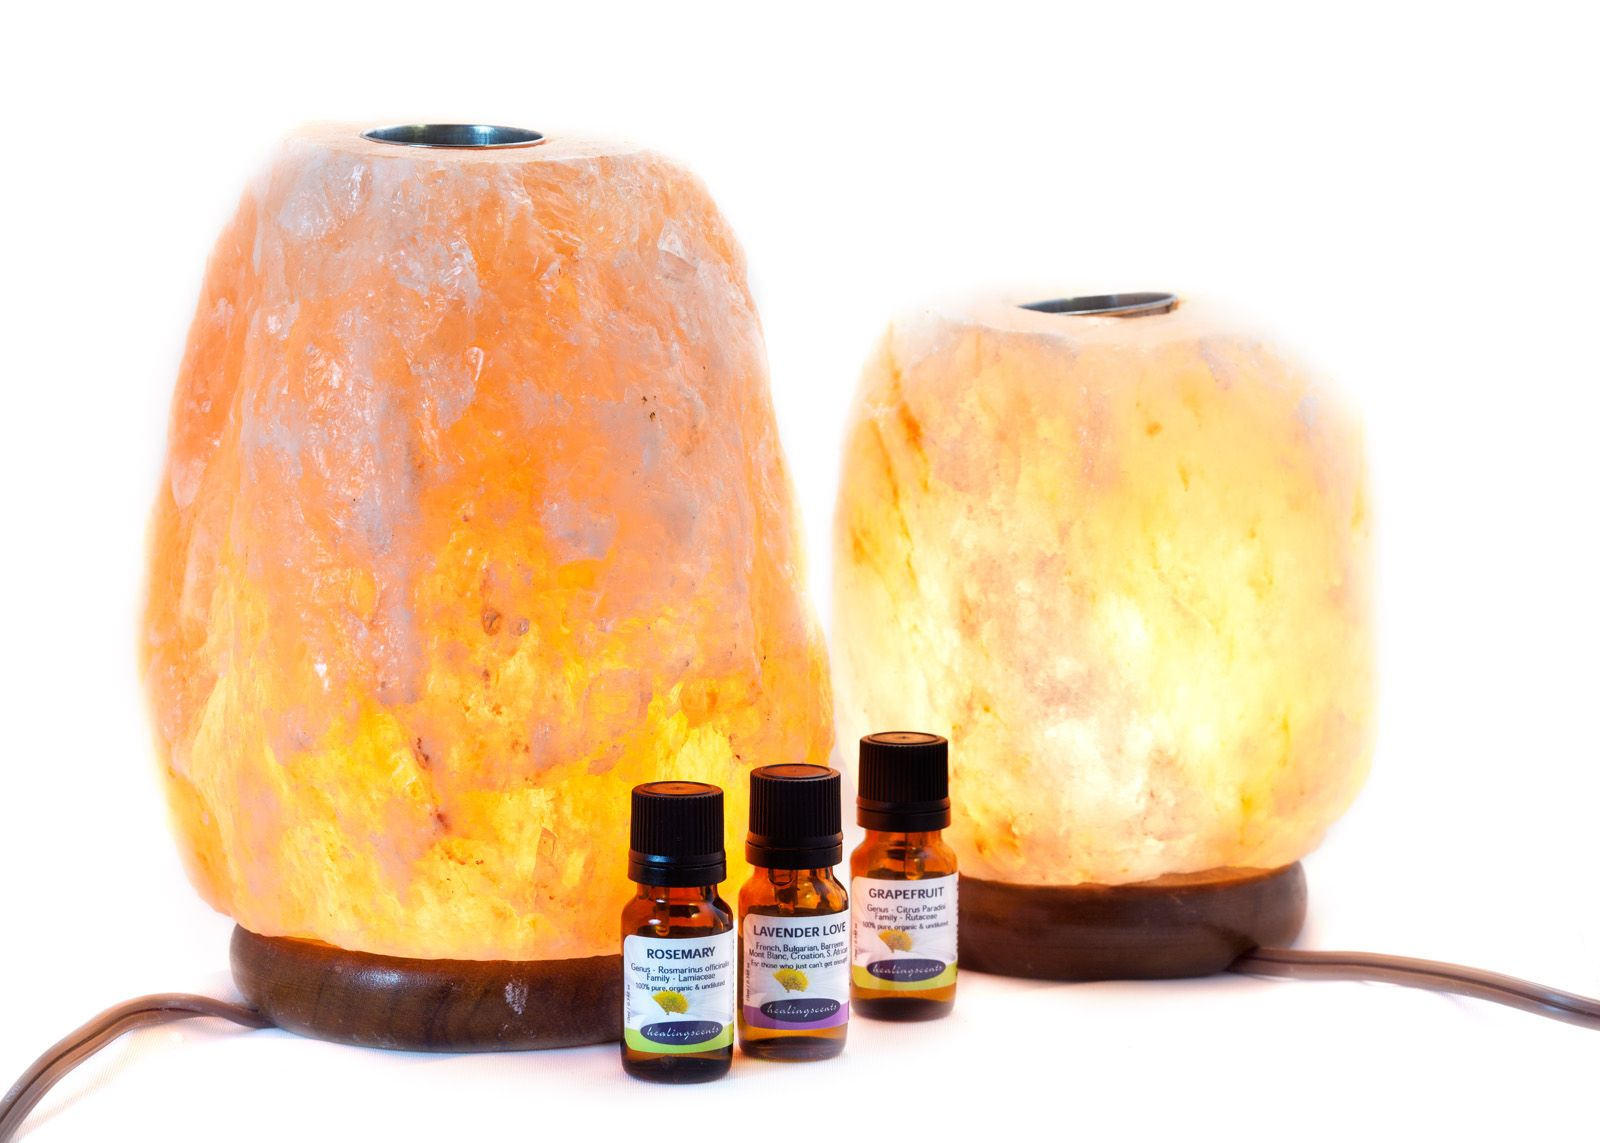 Salt Lamps Near Me Best Himalayan Salt Lamp Diffusers  Healingscents Aromatherapy Inspiration Design